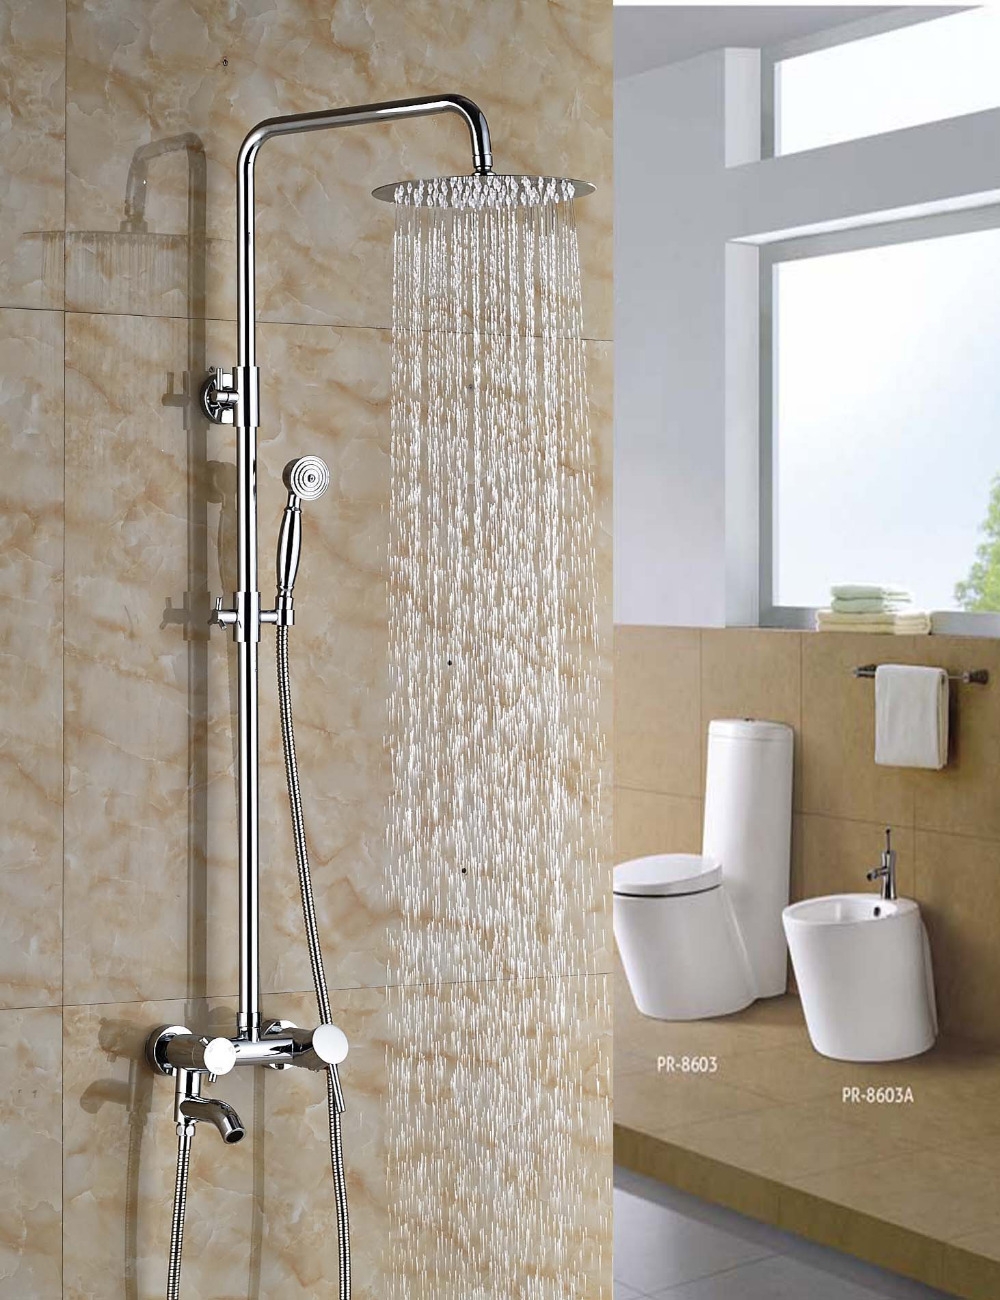 Wholesale And Retail Polished Chrome Finish Round Rain Shower Head Vavle Mixer Tap Swivel Spout W/ Hand Sprayer wholesale and retail modern chrome finish 8 inch shower faucet set rain shower head w hand shower wall mount